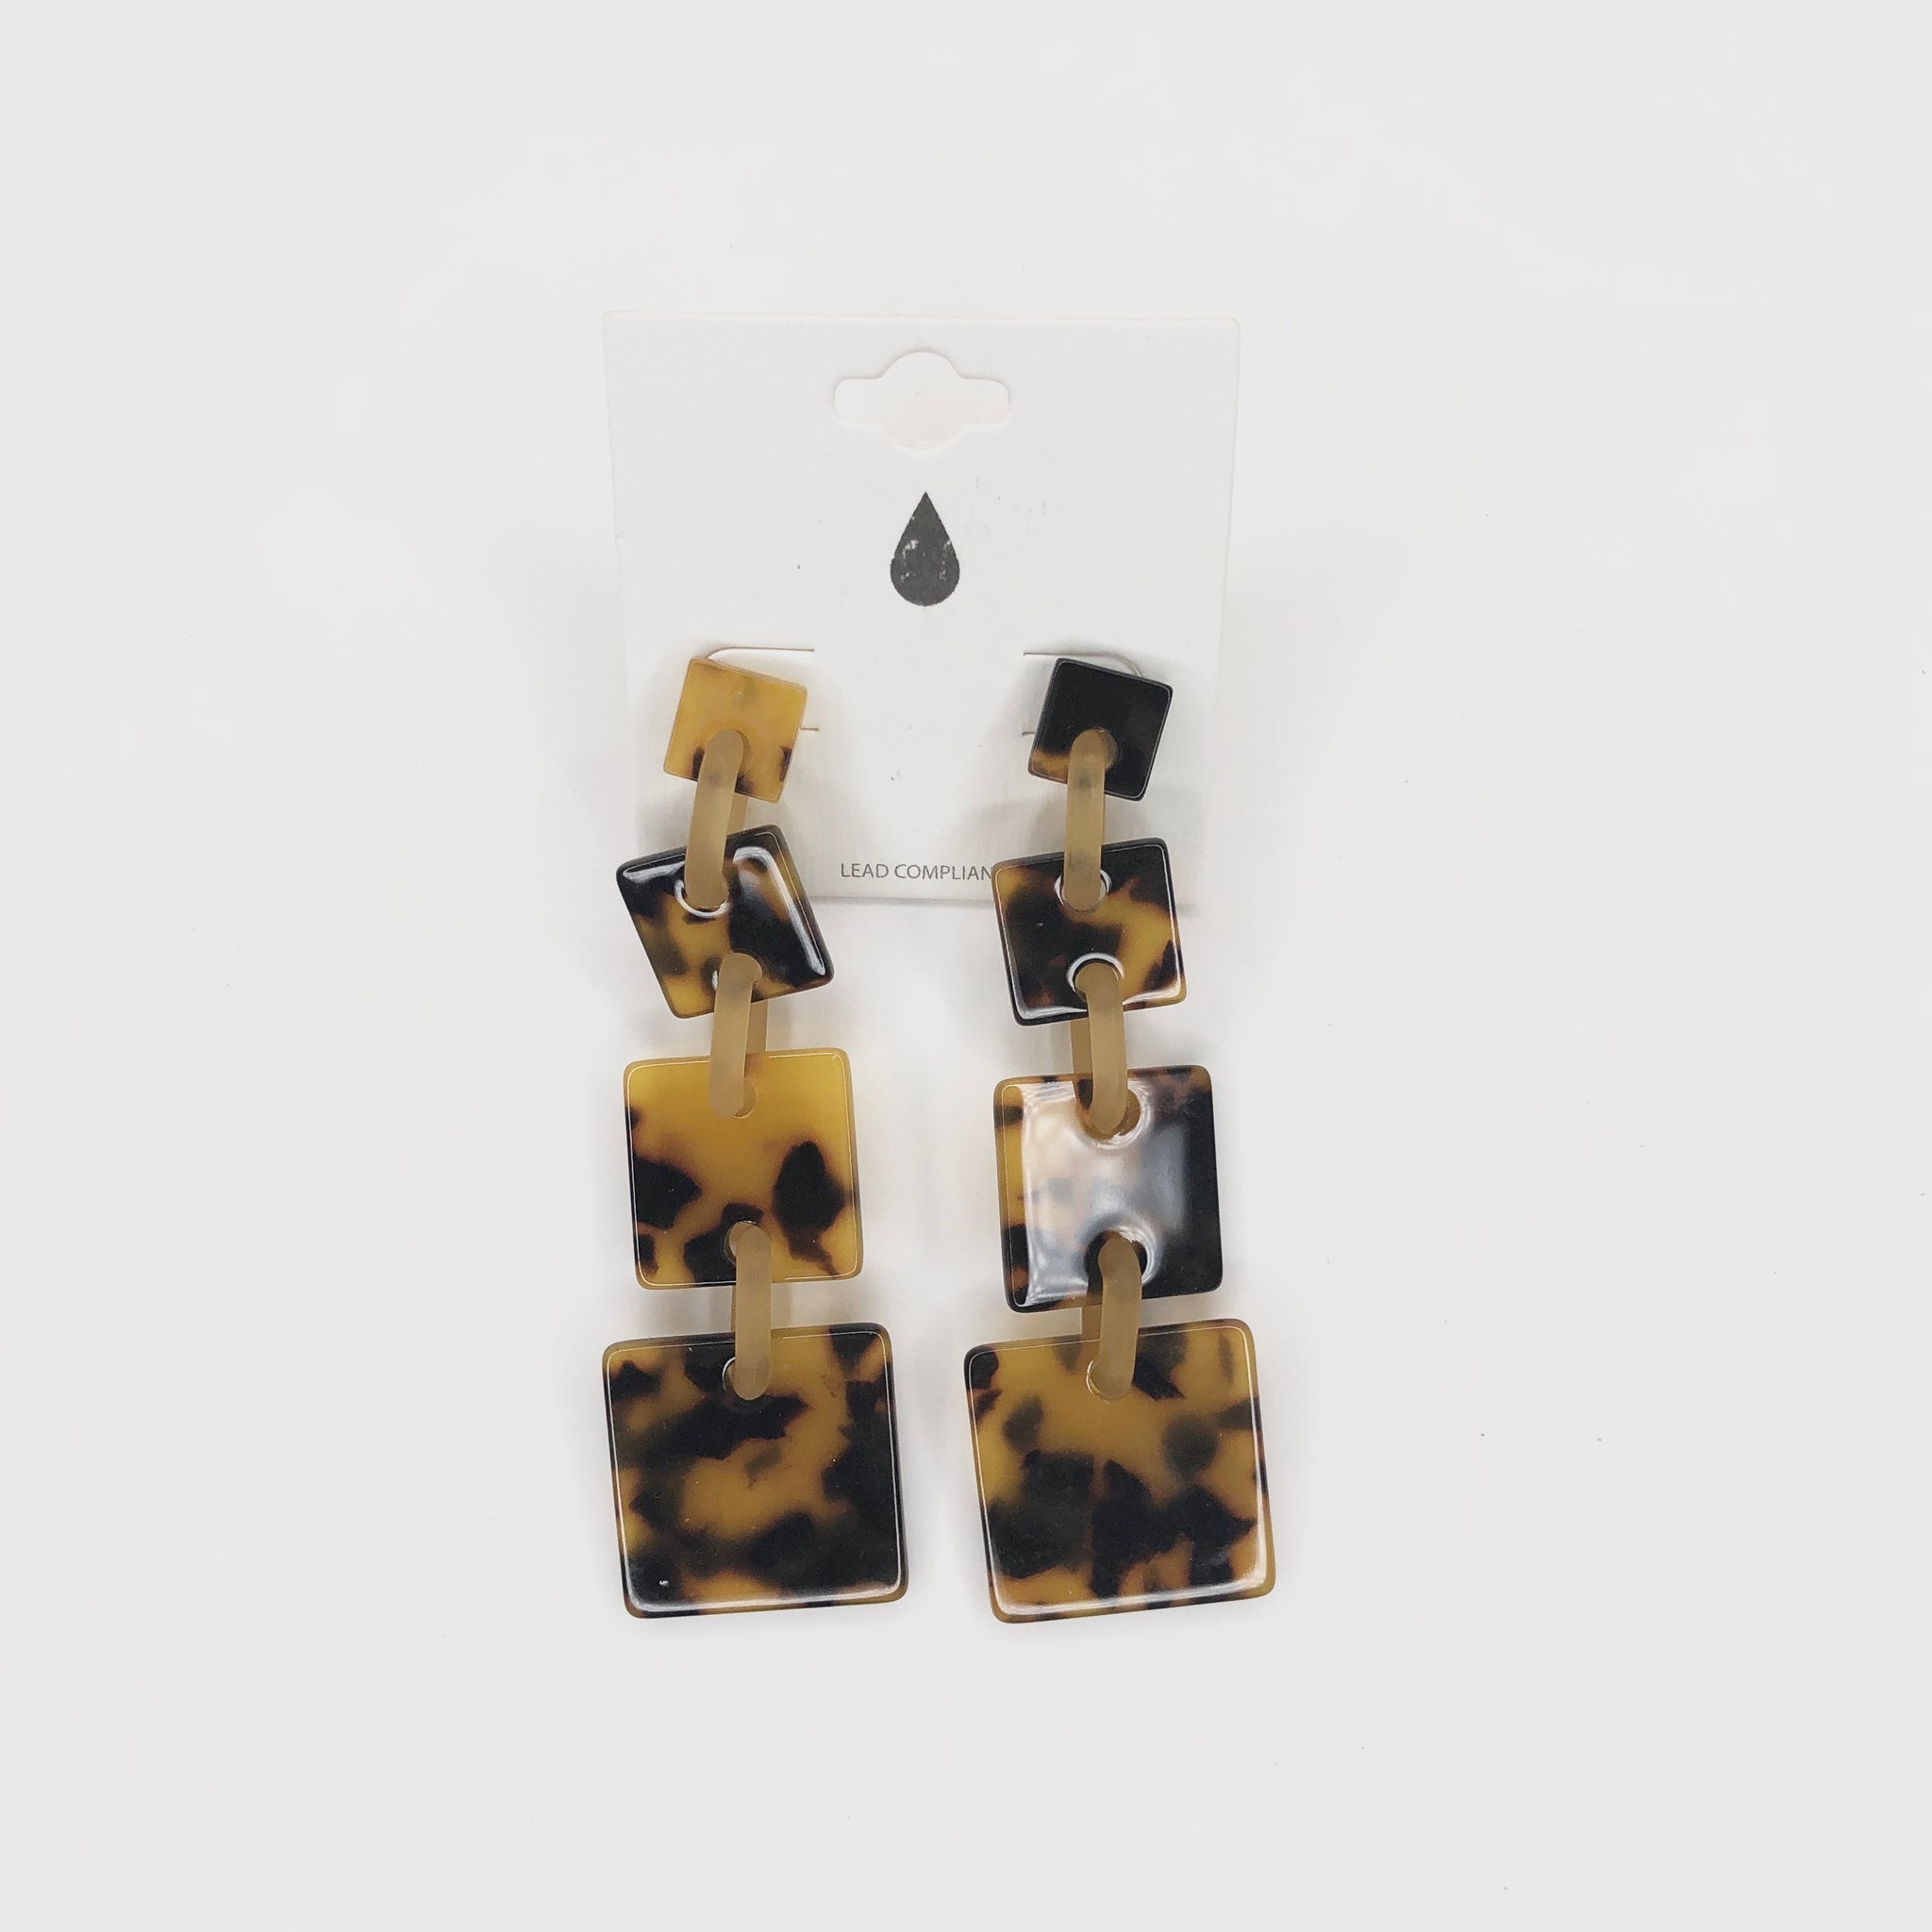 Acrylic Square Link Earrings